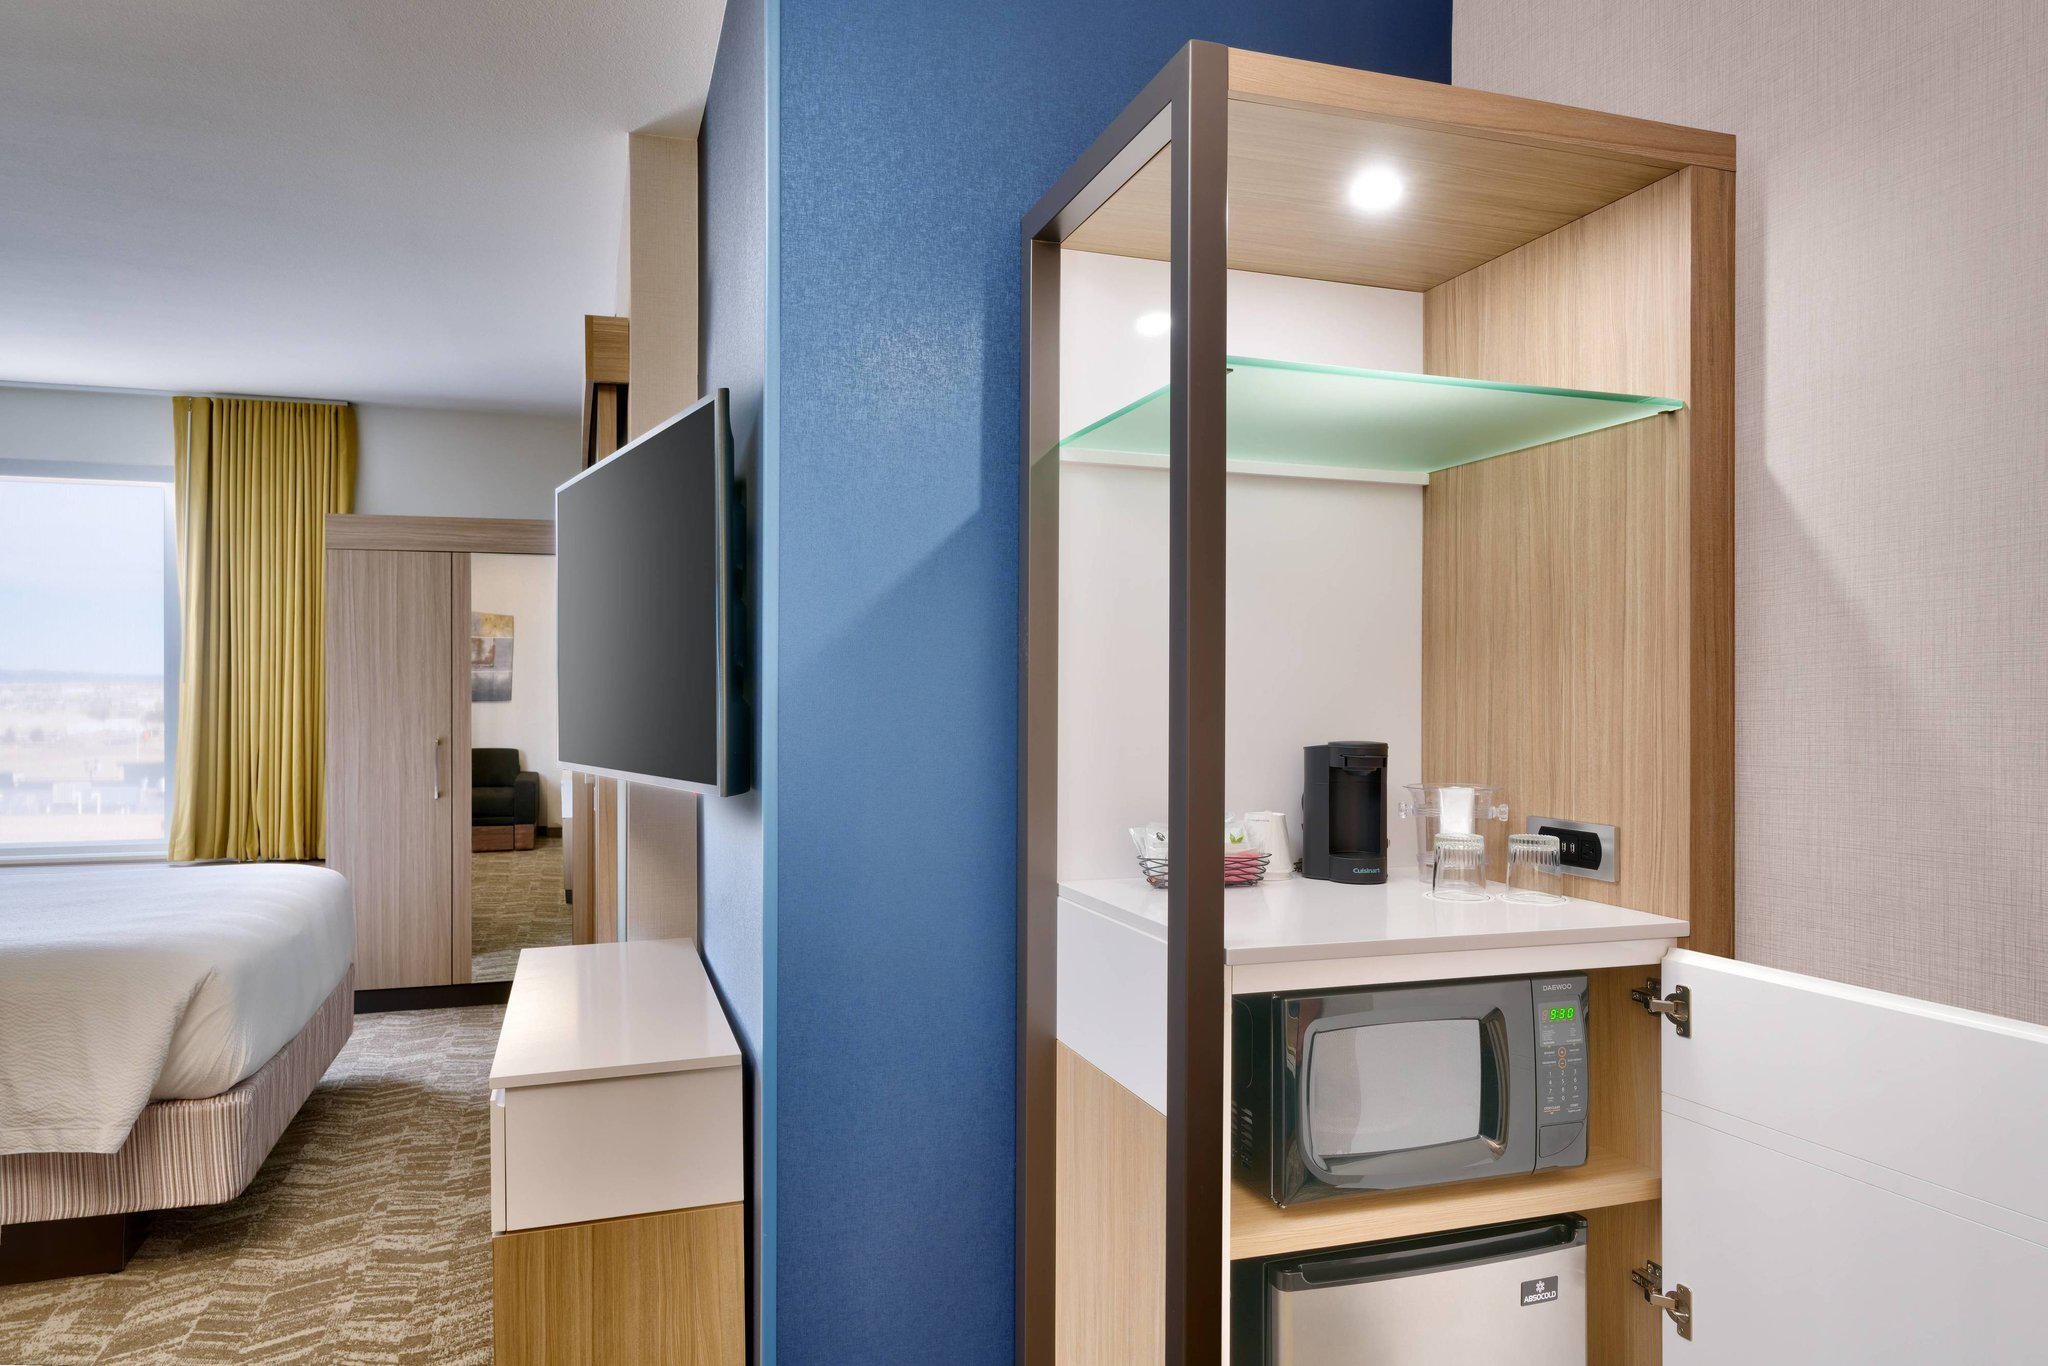 SpringHill Suites by Marriott Colorado Springs North/Air Force Academy